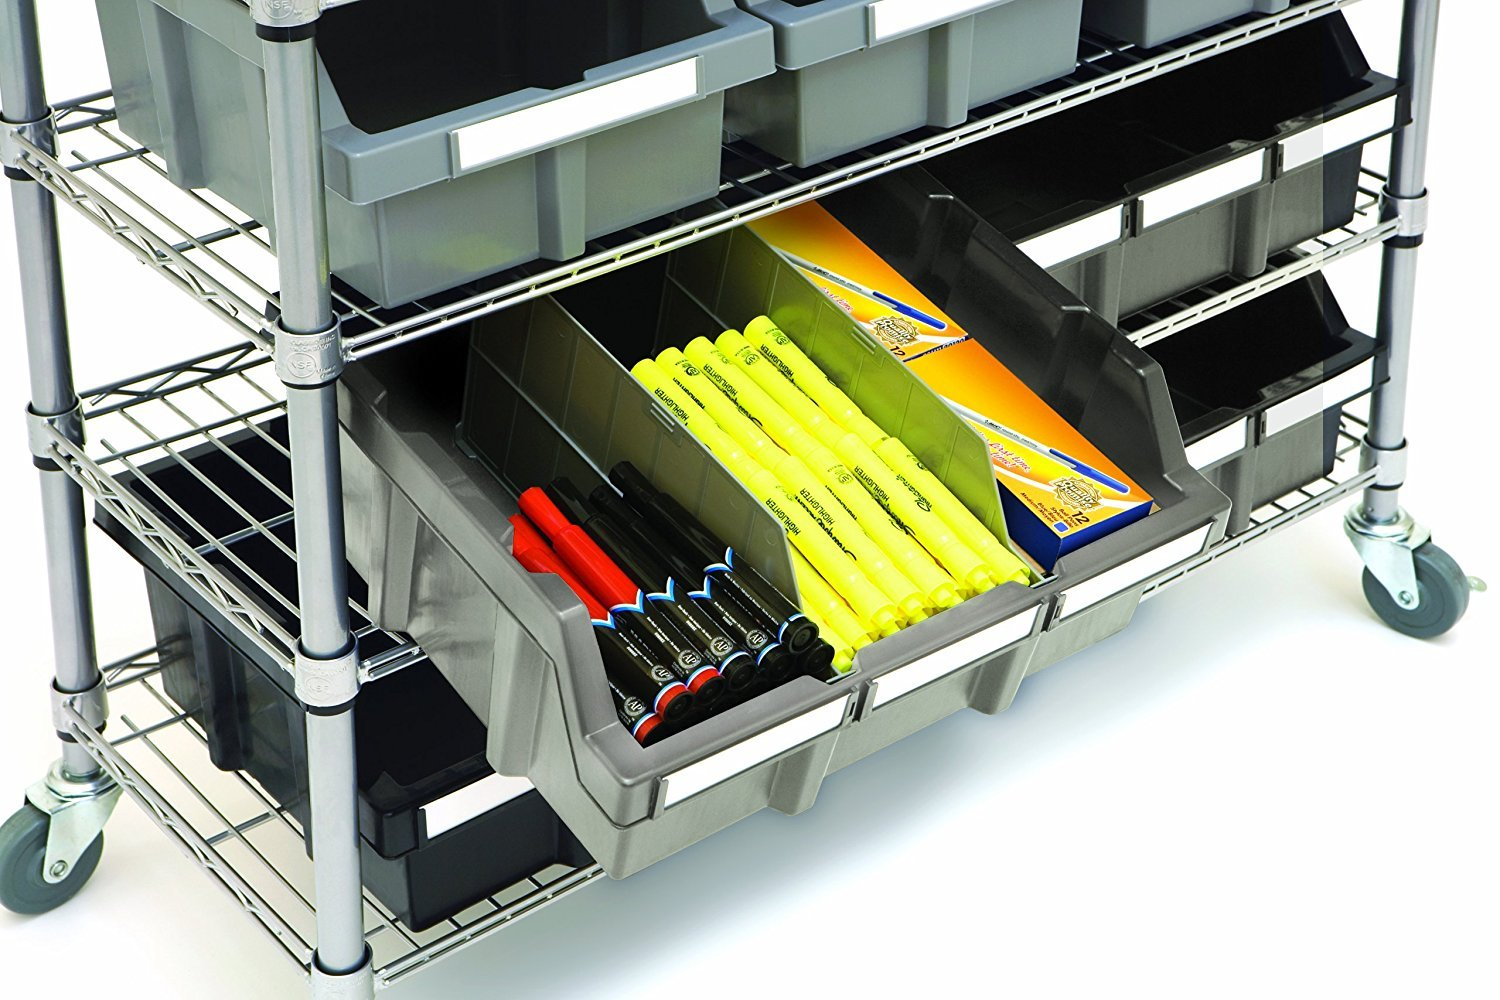 Seville Classics Commercial 7-Tier Platinum/Gray NSF 16-Bin Rack Storage System by Seville Classics (Image #6)